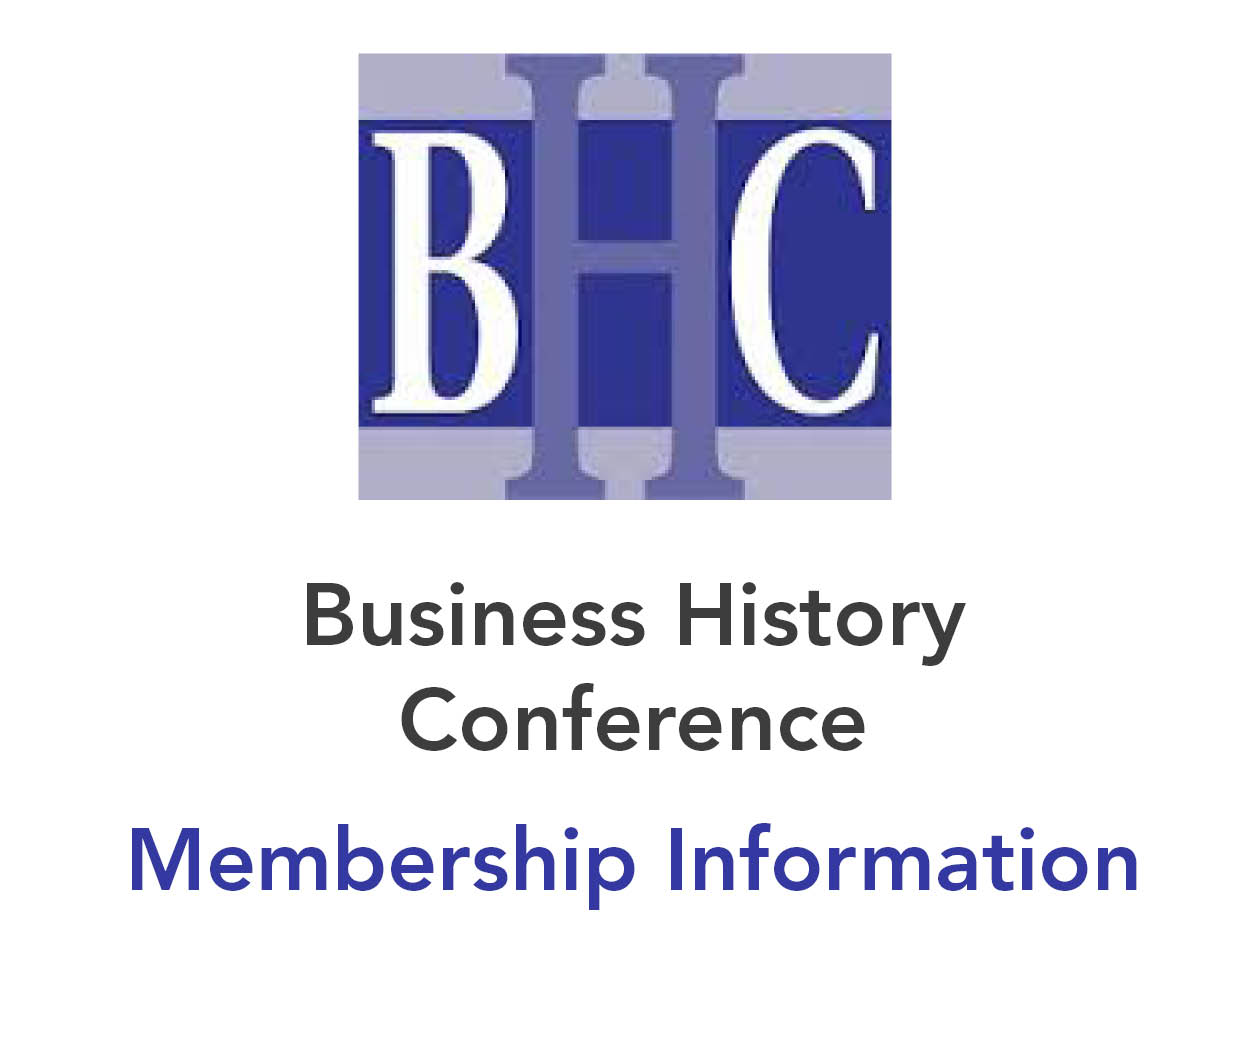 Business History conference - Membership Information